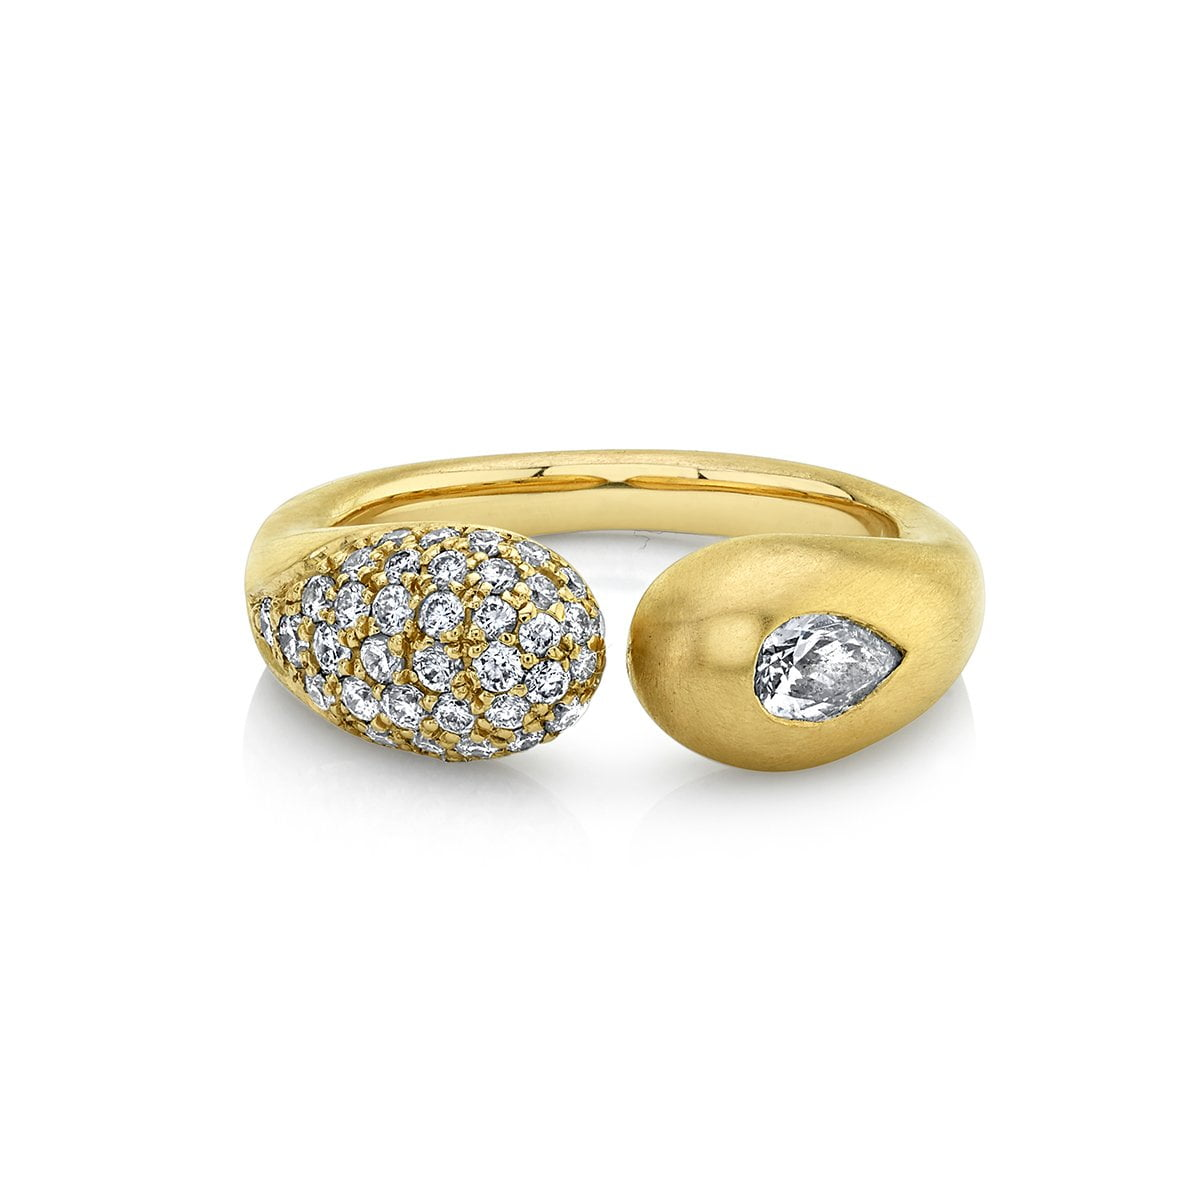 NEW! Elixir of Life Pavé Diamond Ring